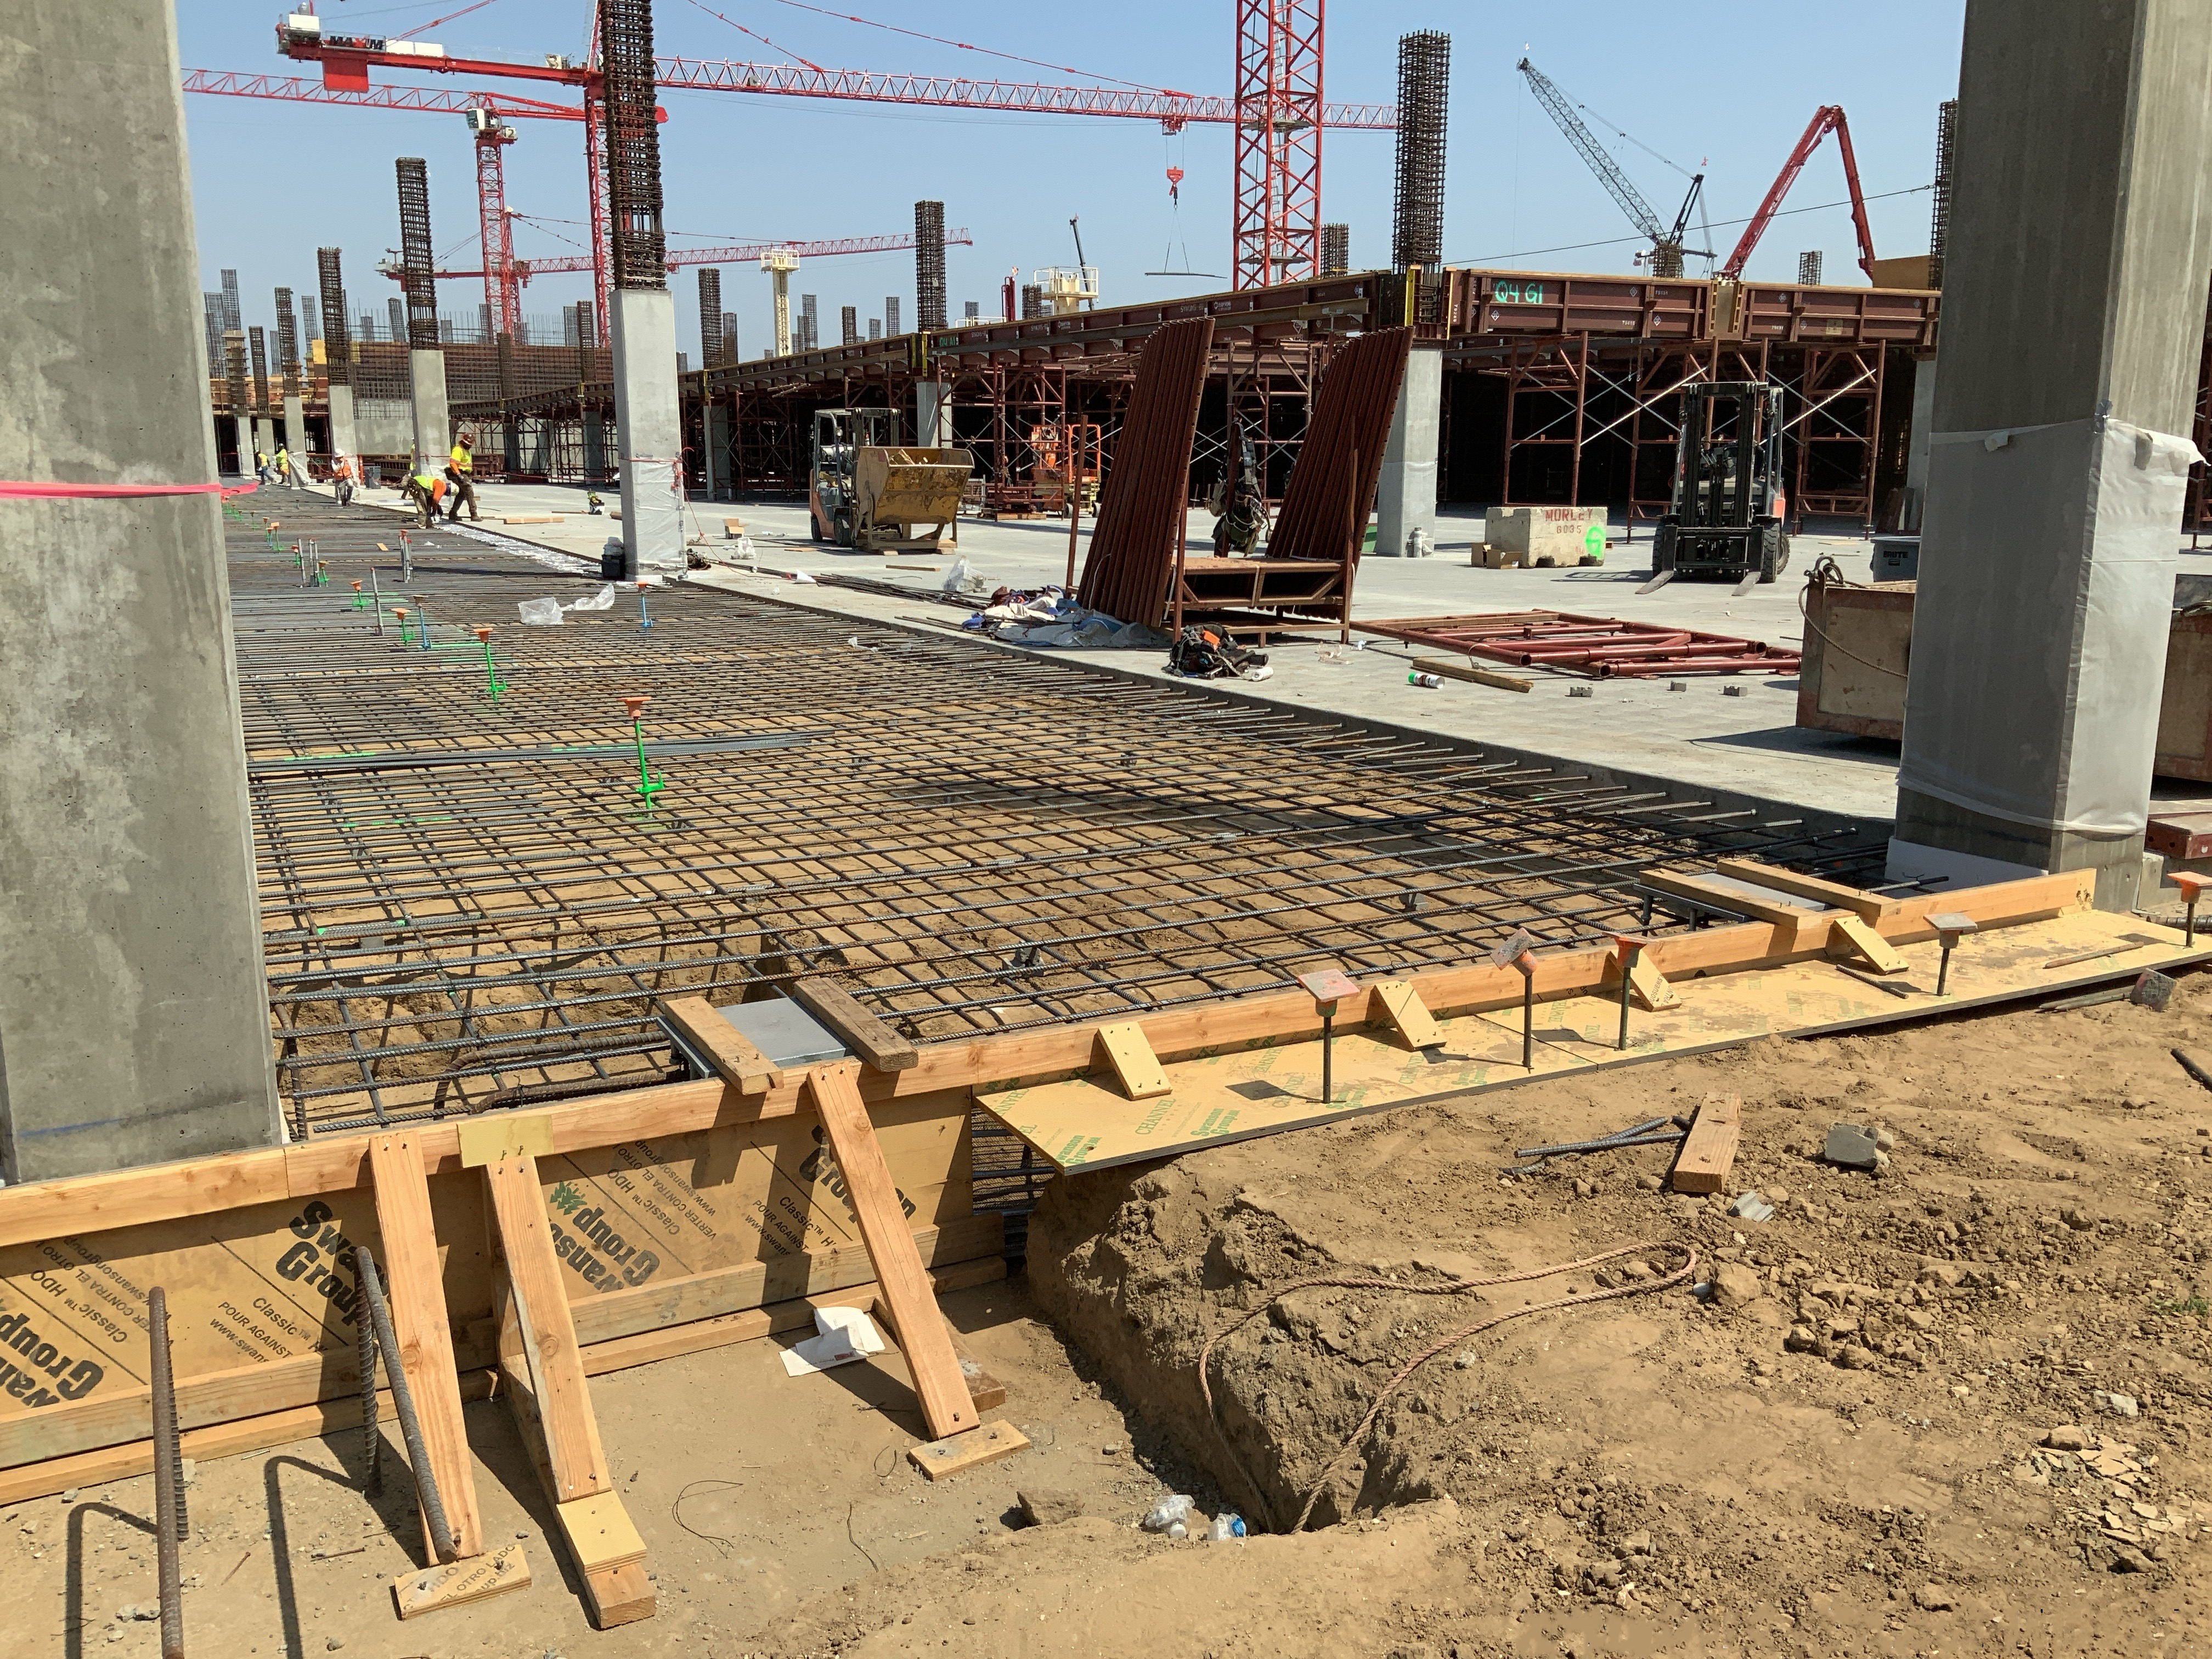 Intallation of rebar and embeds in preparation for slab pour at the Consolidated Rent-A-Car facility Ready Return/Idle Storage building.